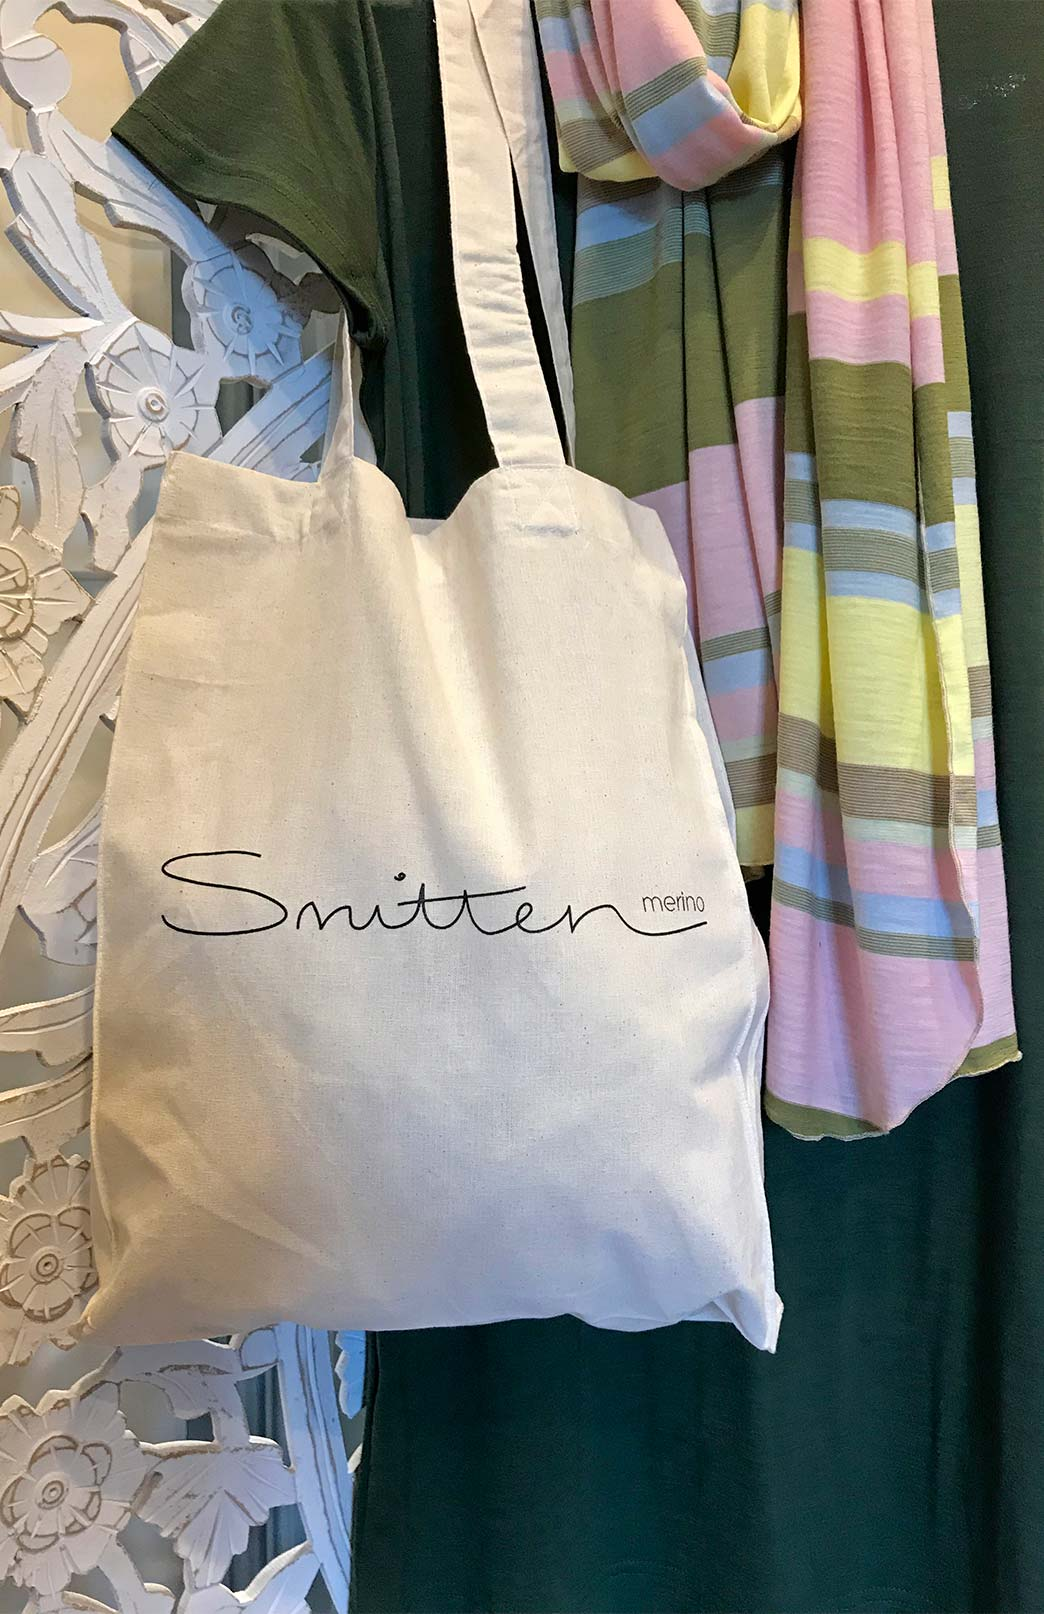 Smitten Reusable Tote Bag - Eco Friendly Reusable Calico Tote Bag with Handles - Smitten Merino Tasmania Australia